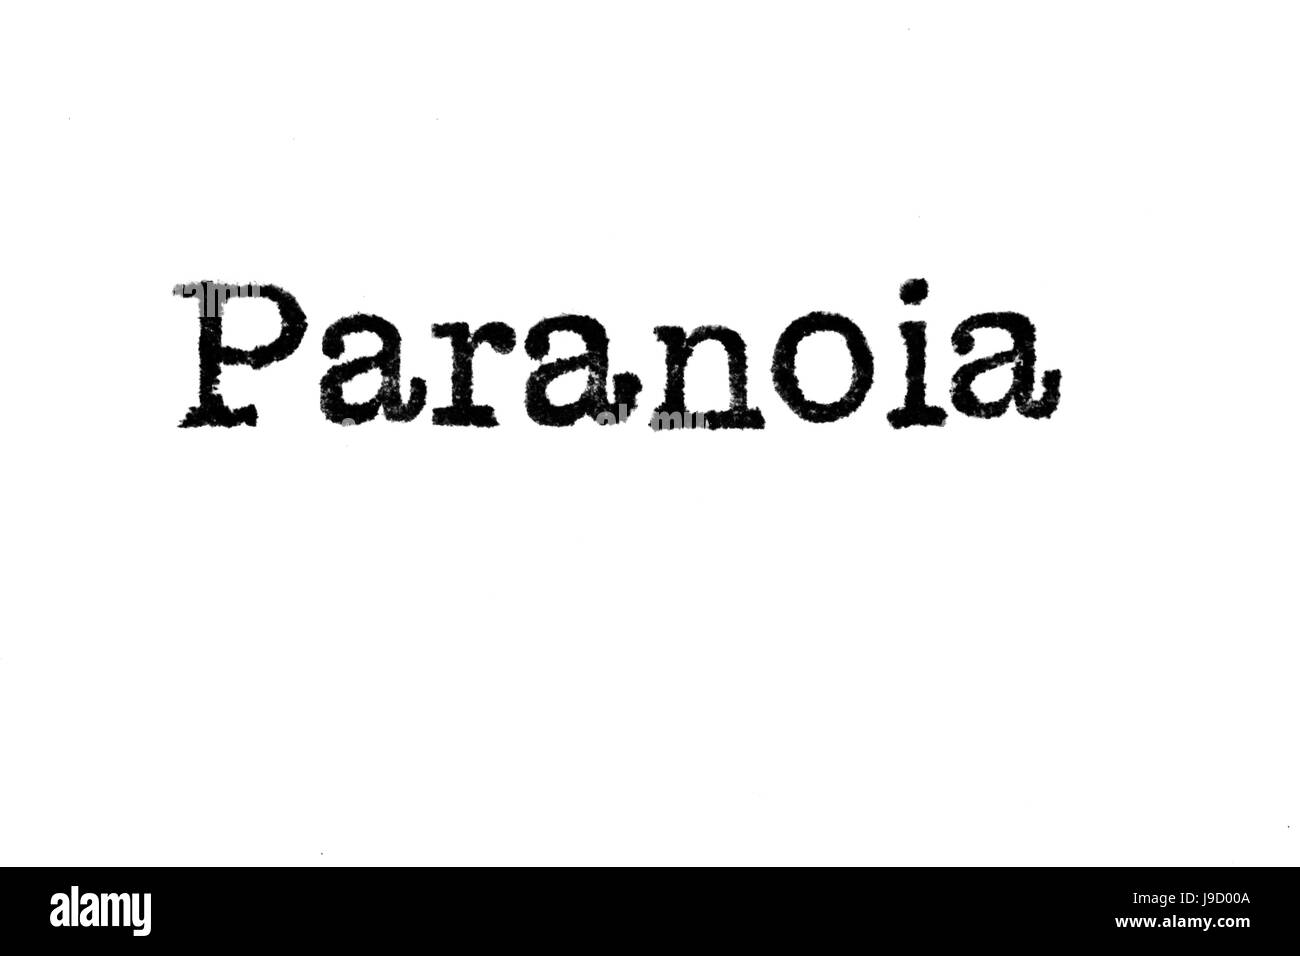 The word 'Paranoia' from a typewriter on a white background - Stock Image